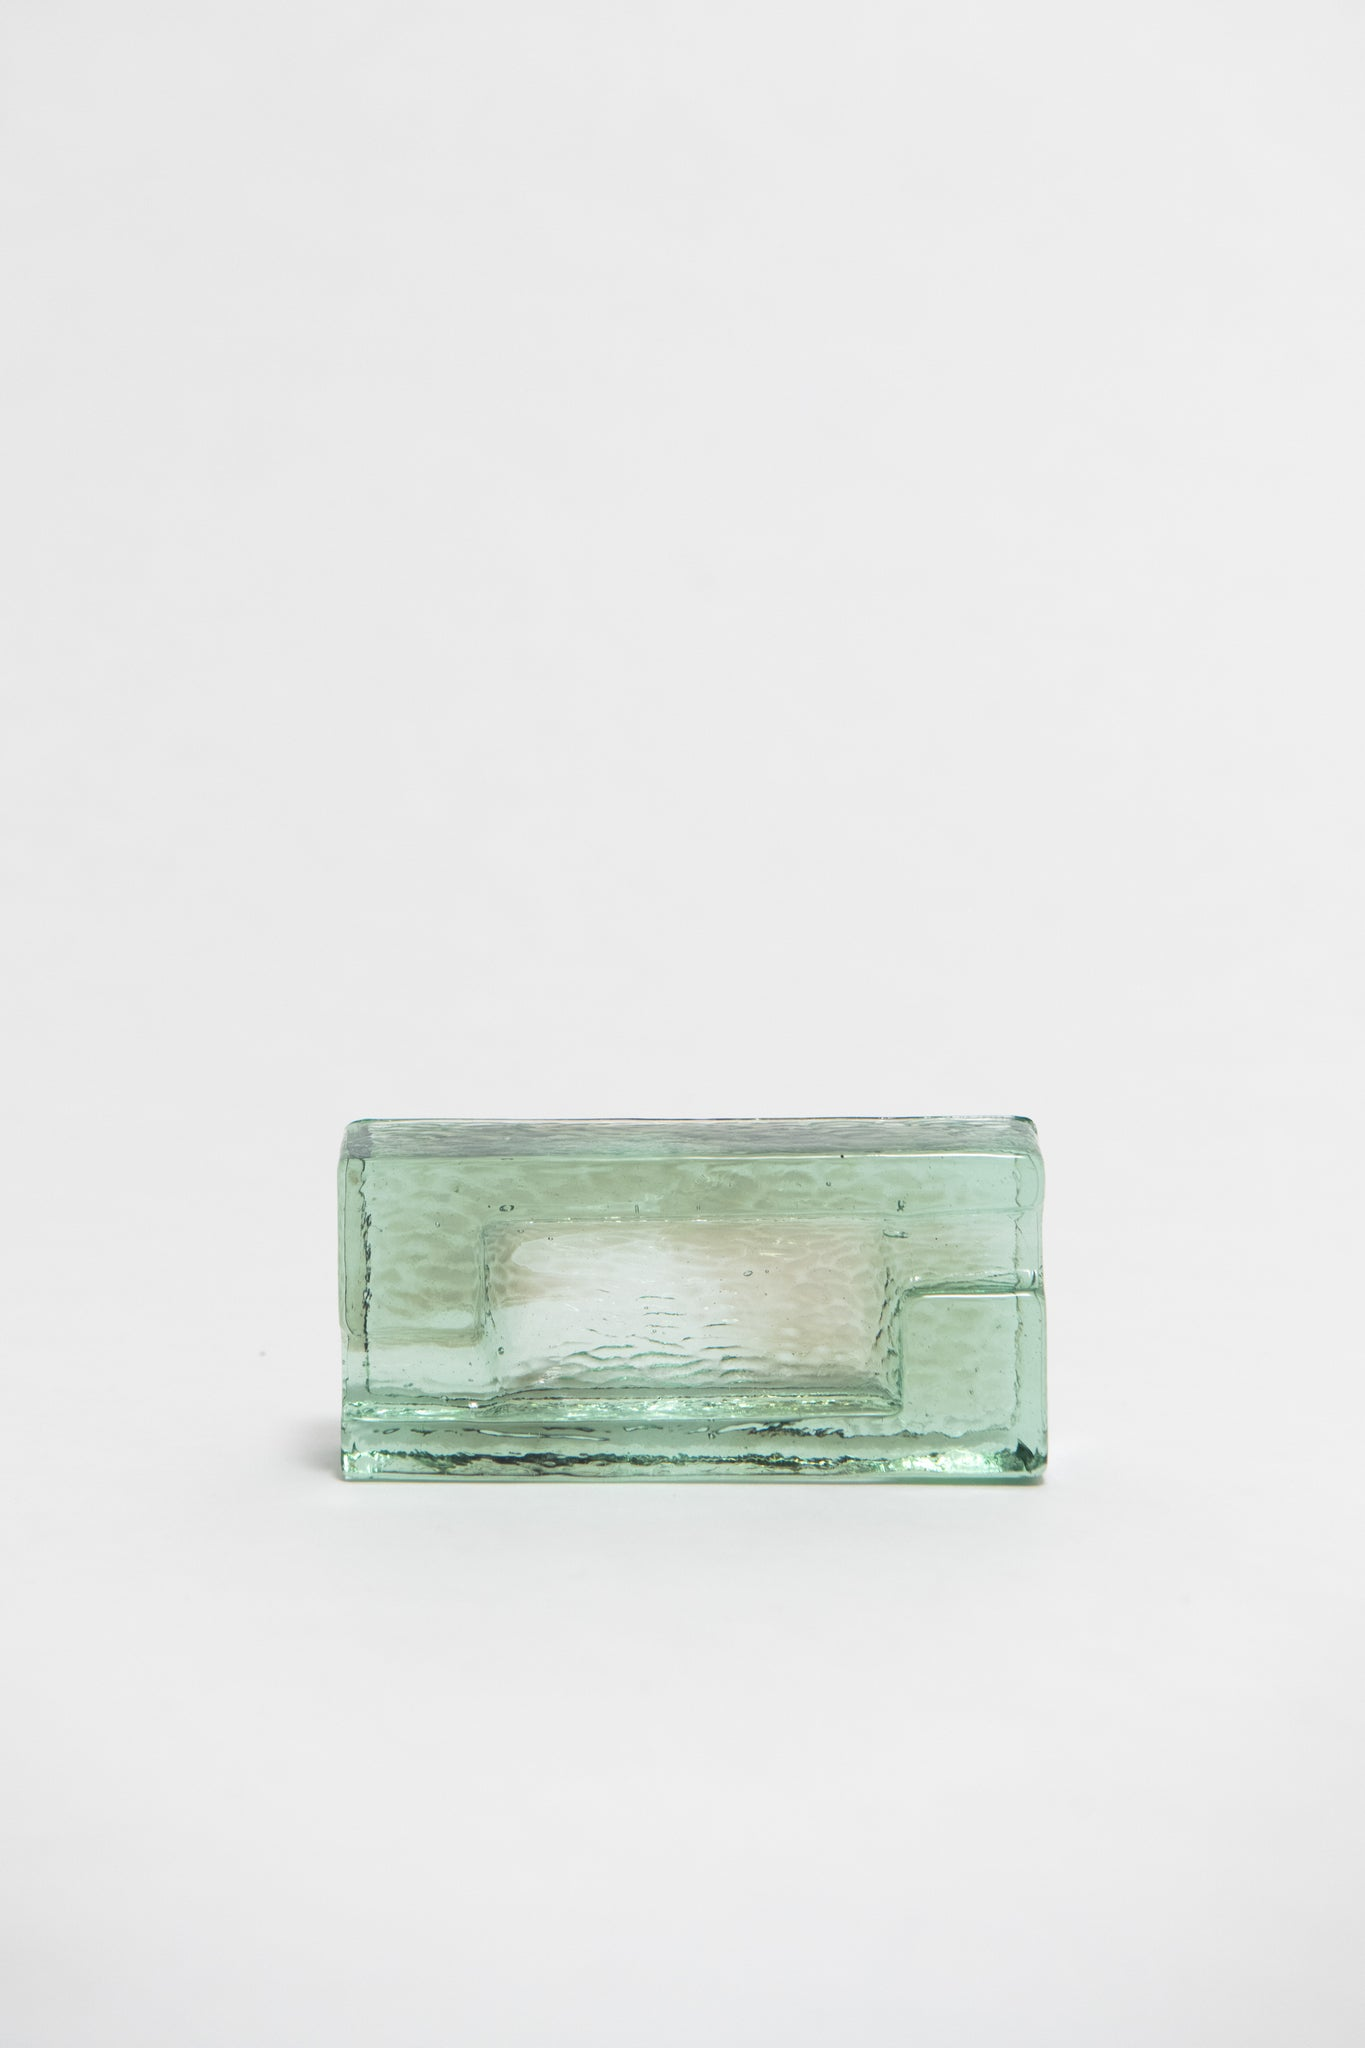 FRENCH, ART DECO GREEN GLASS ASHTRAY, C. 1930